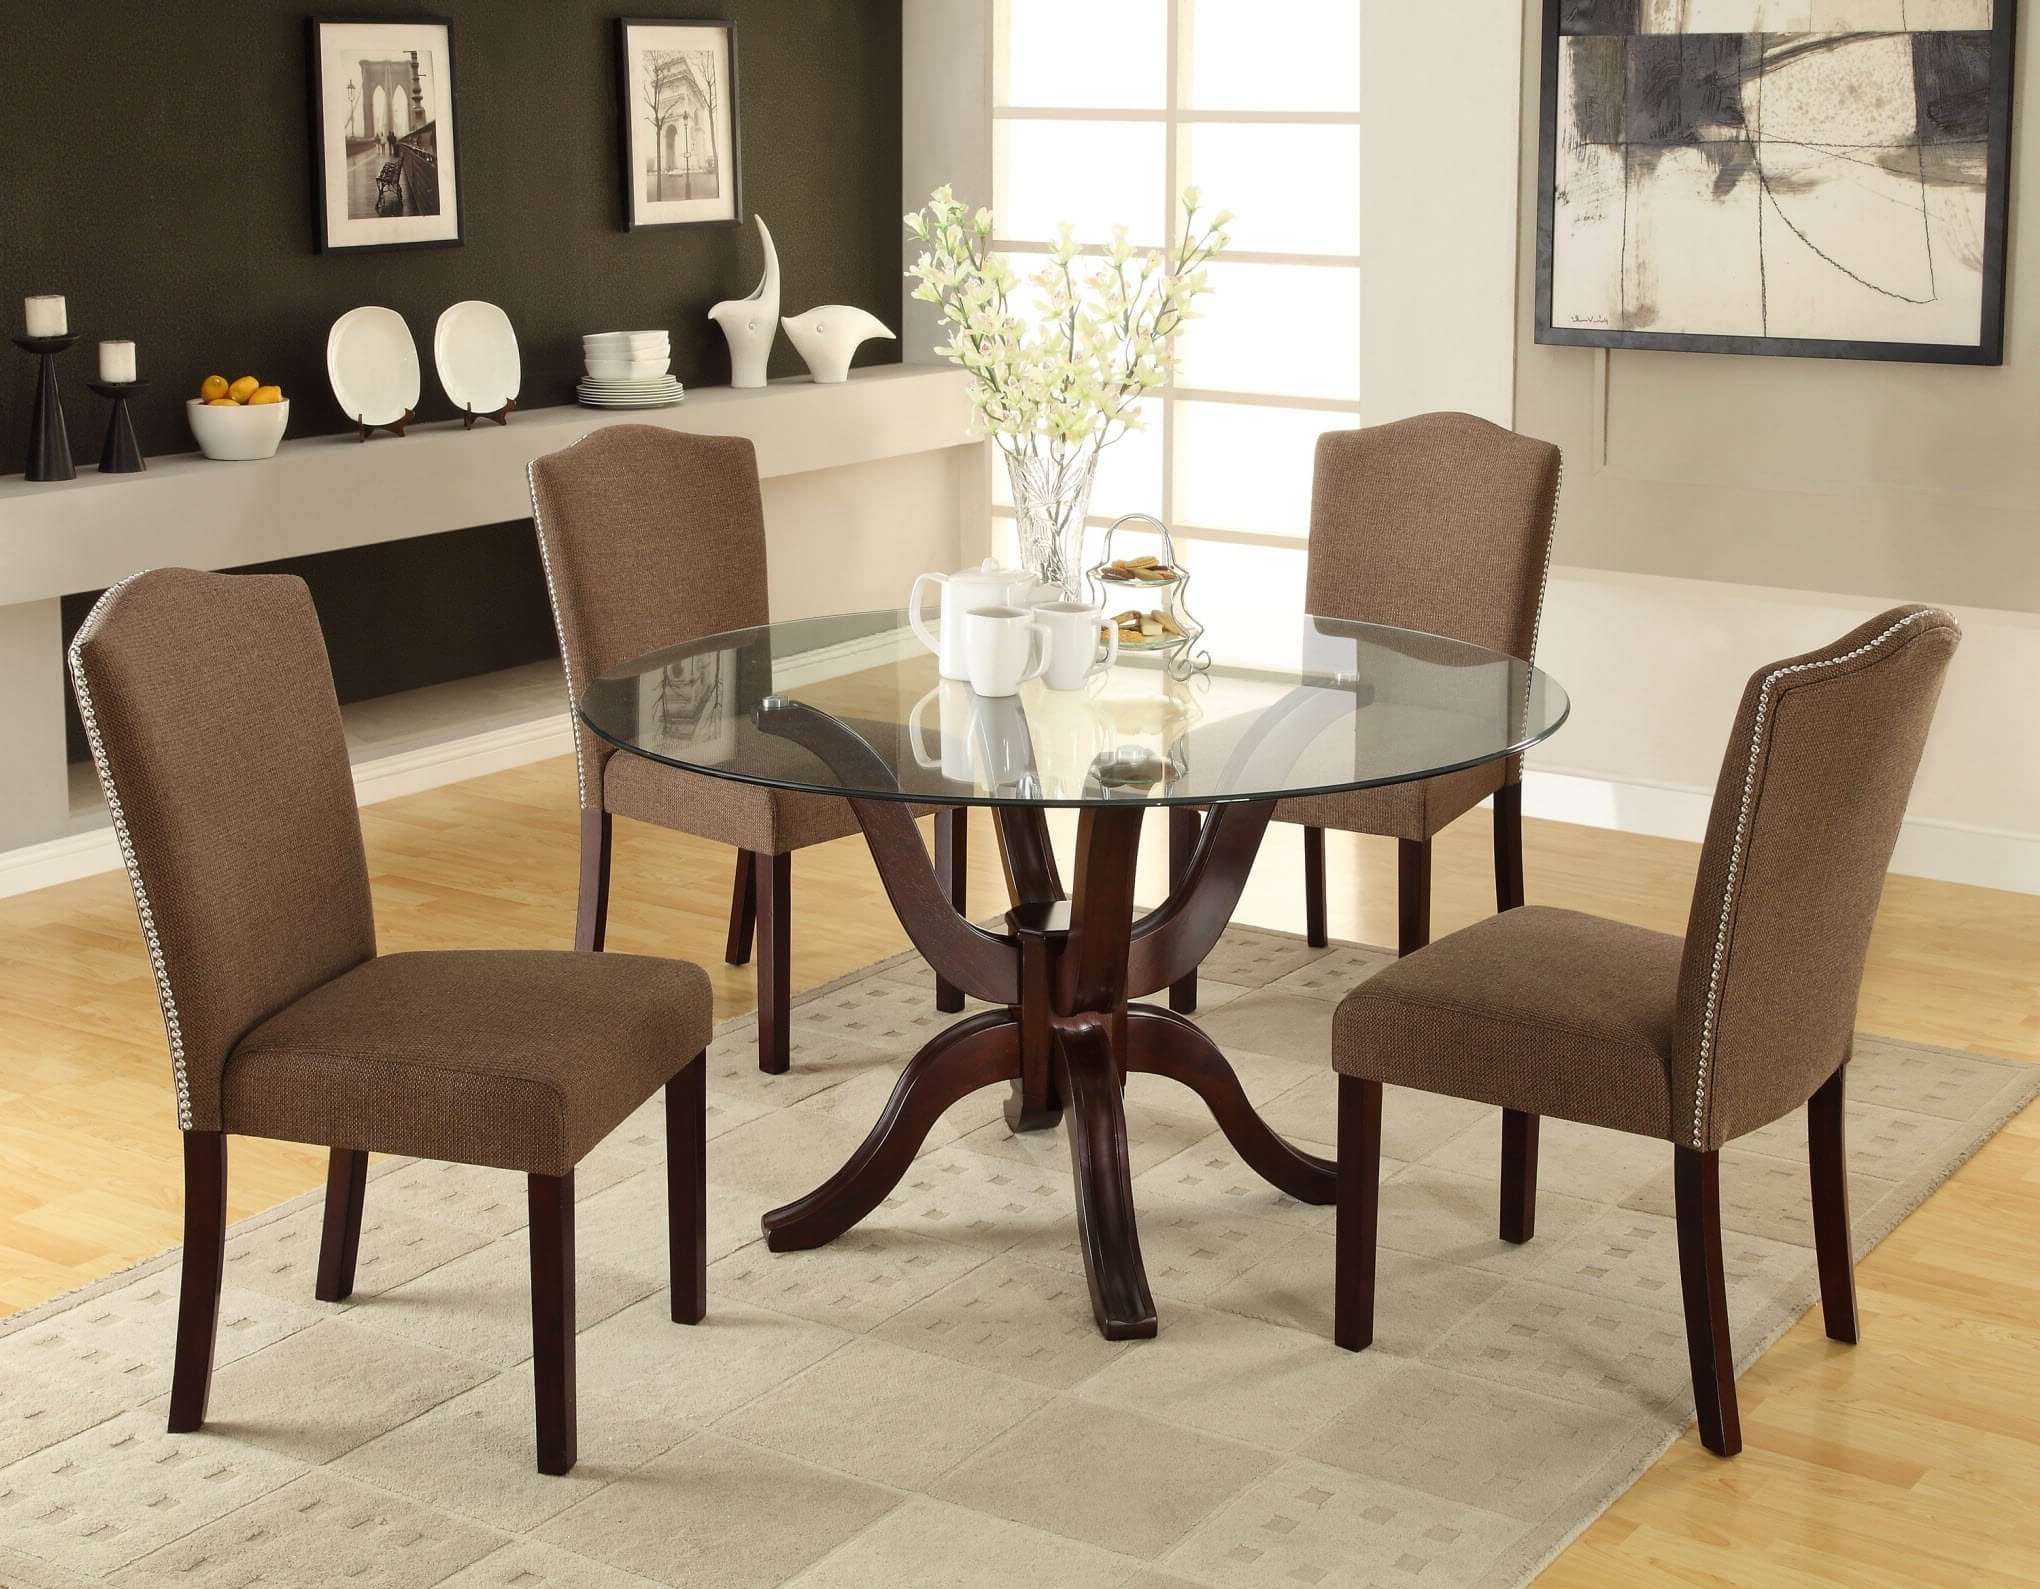 Newest Glass Dining Tables Sets With Round Glass Dining Table Sets For 4 Best Of Round Glass Dining Table (View 11 of 25)